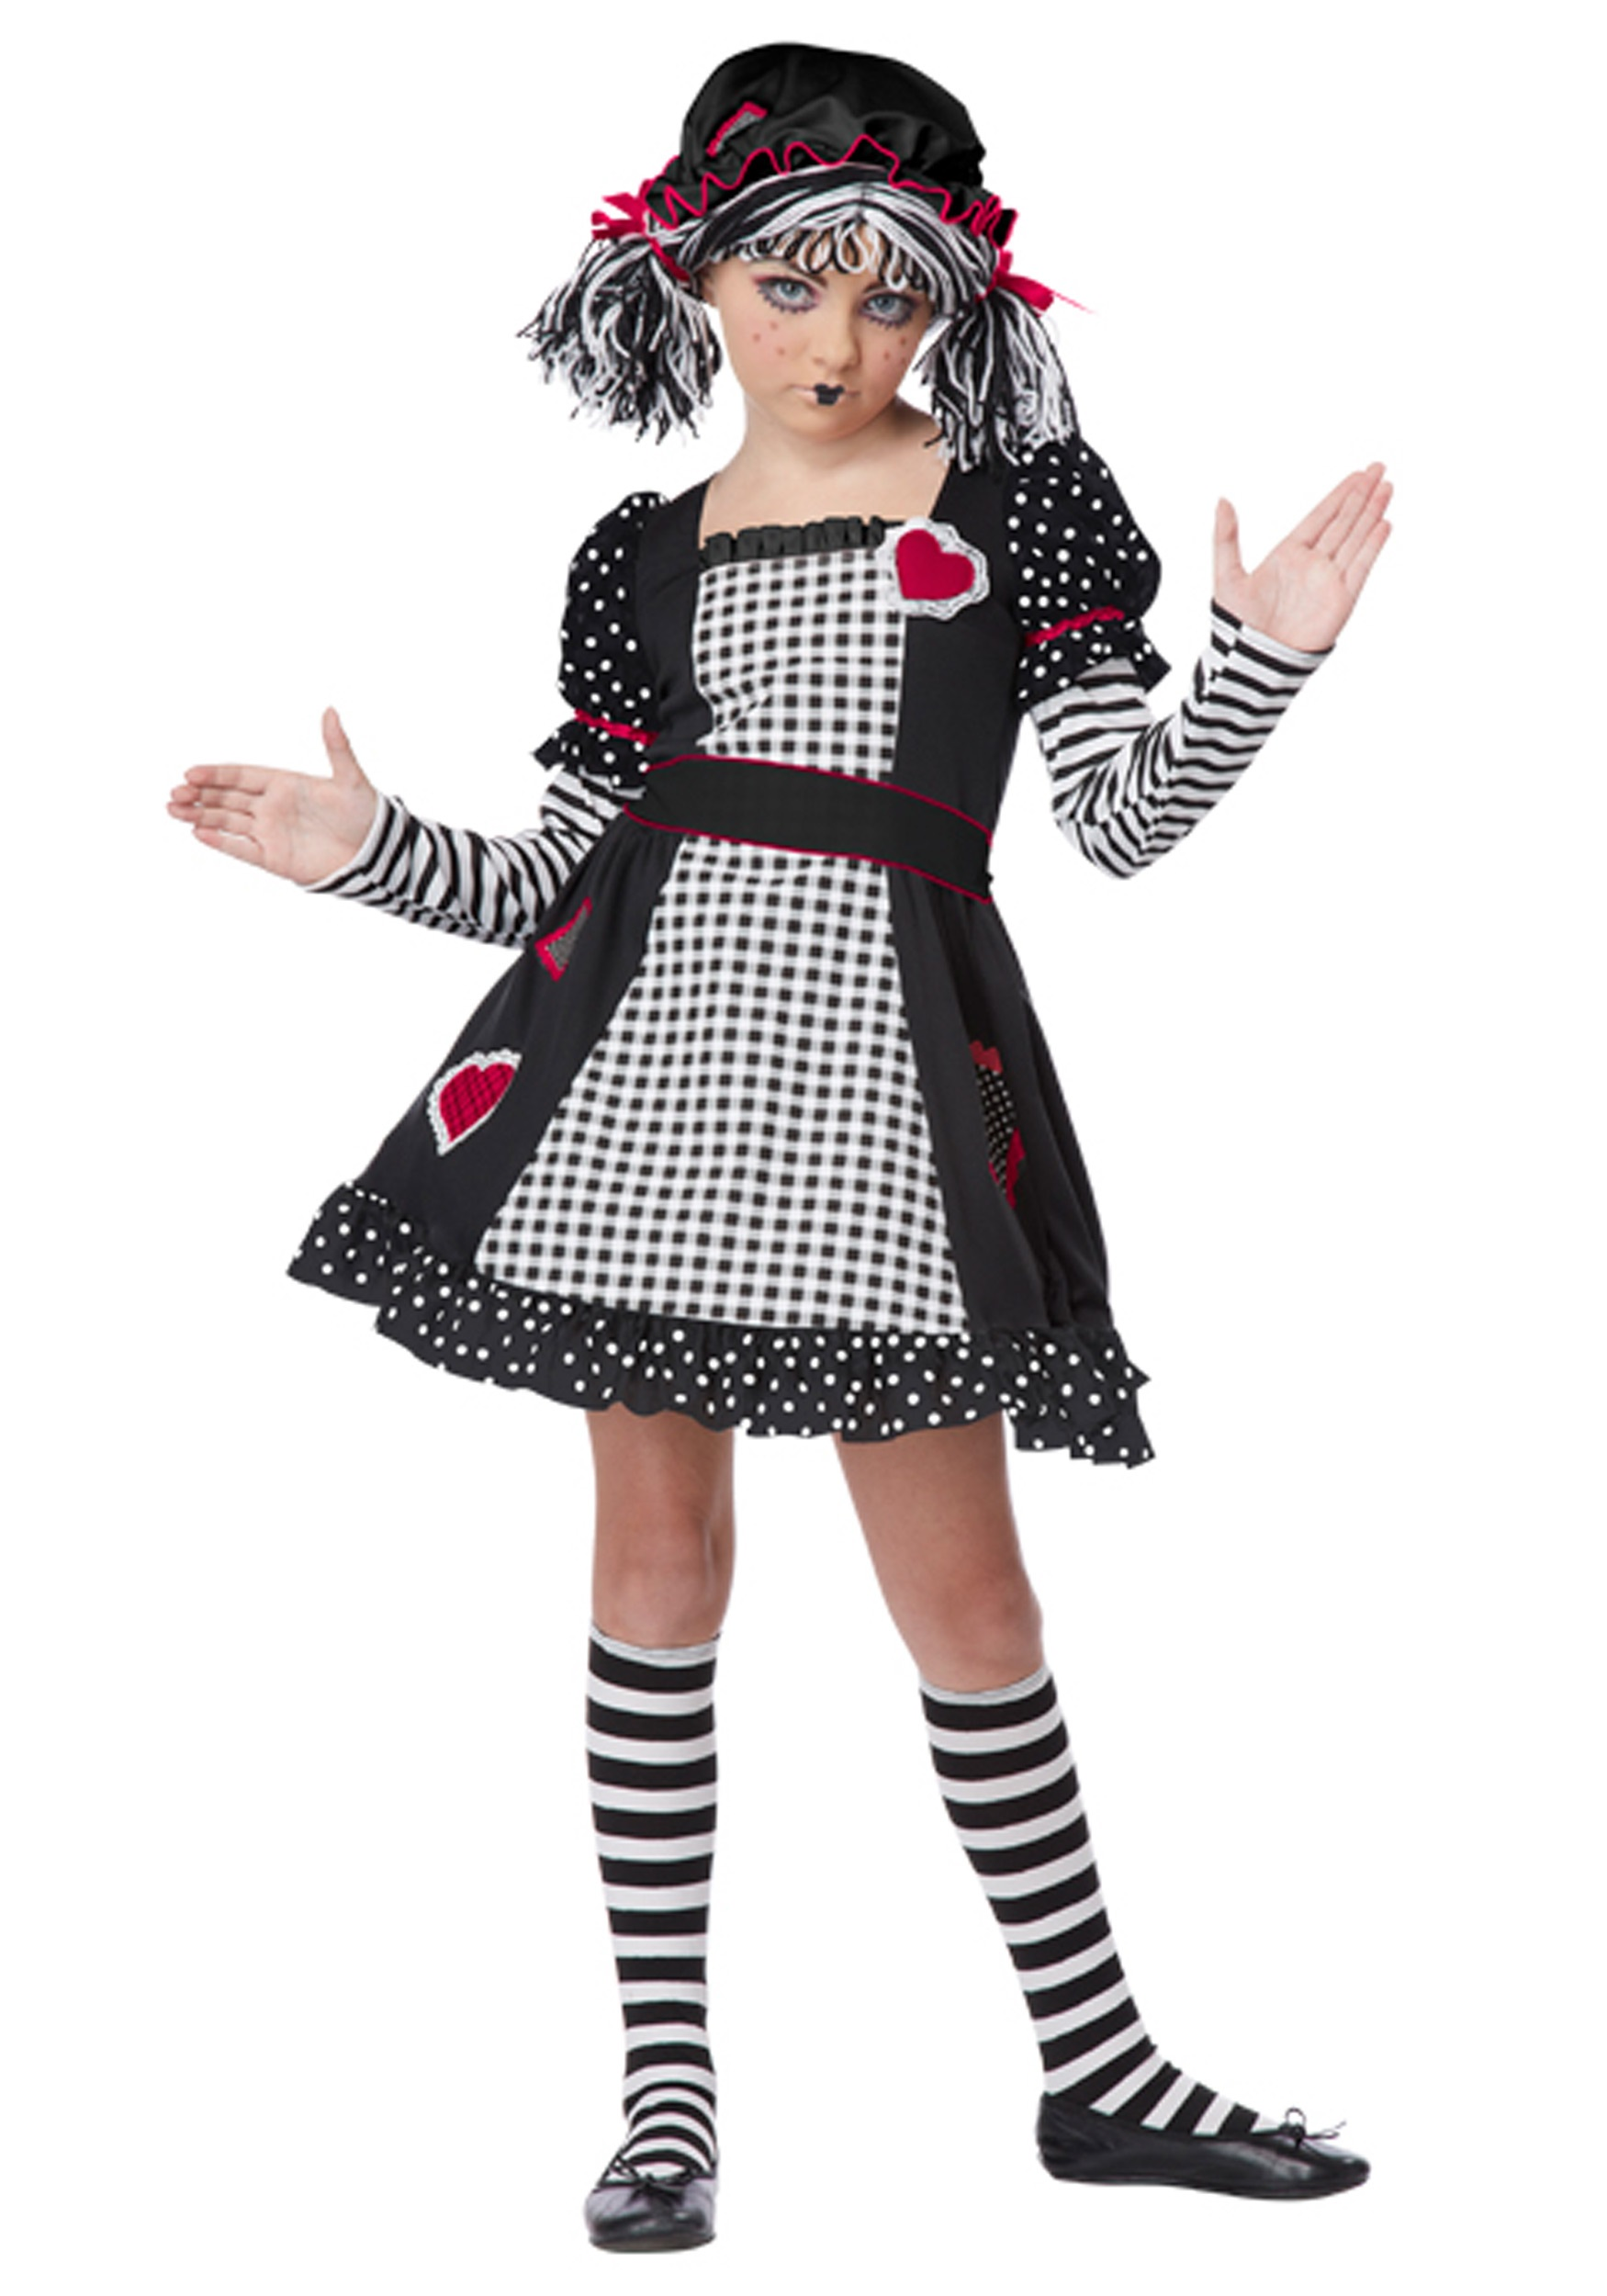 Scary Doll Costumes For Halloween Creepy Doll Costumes